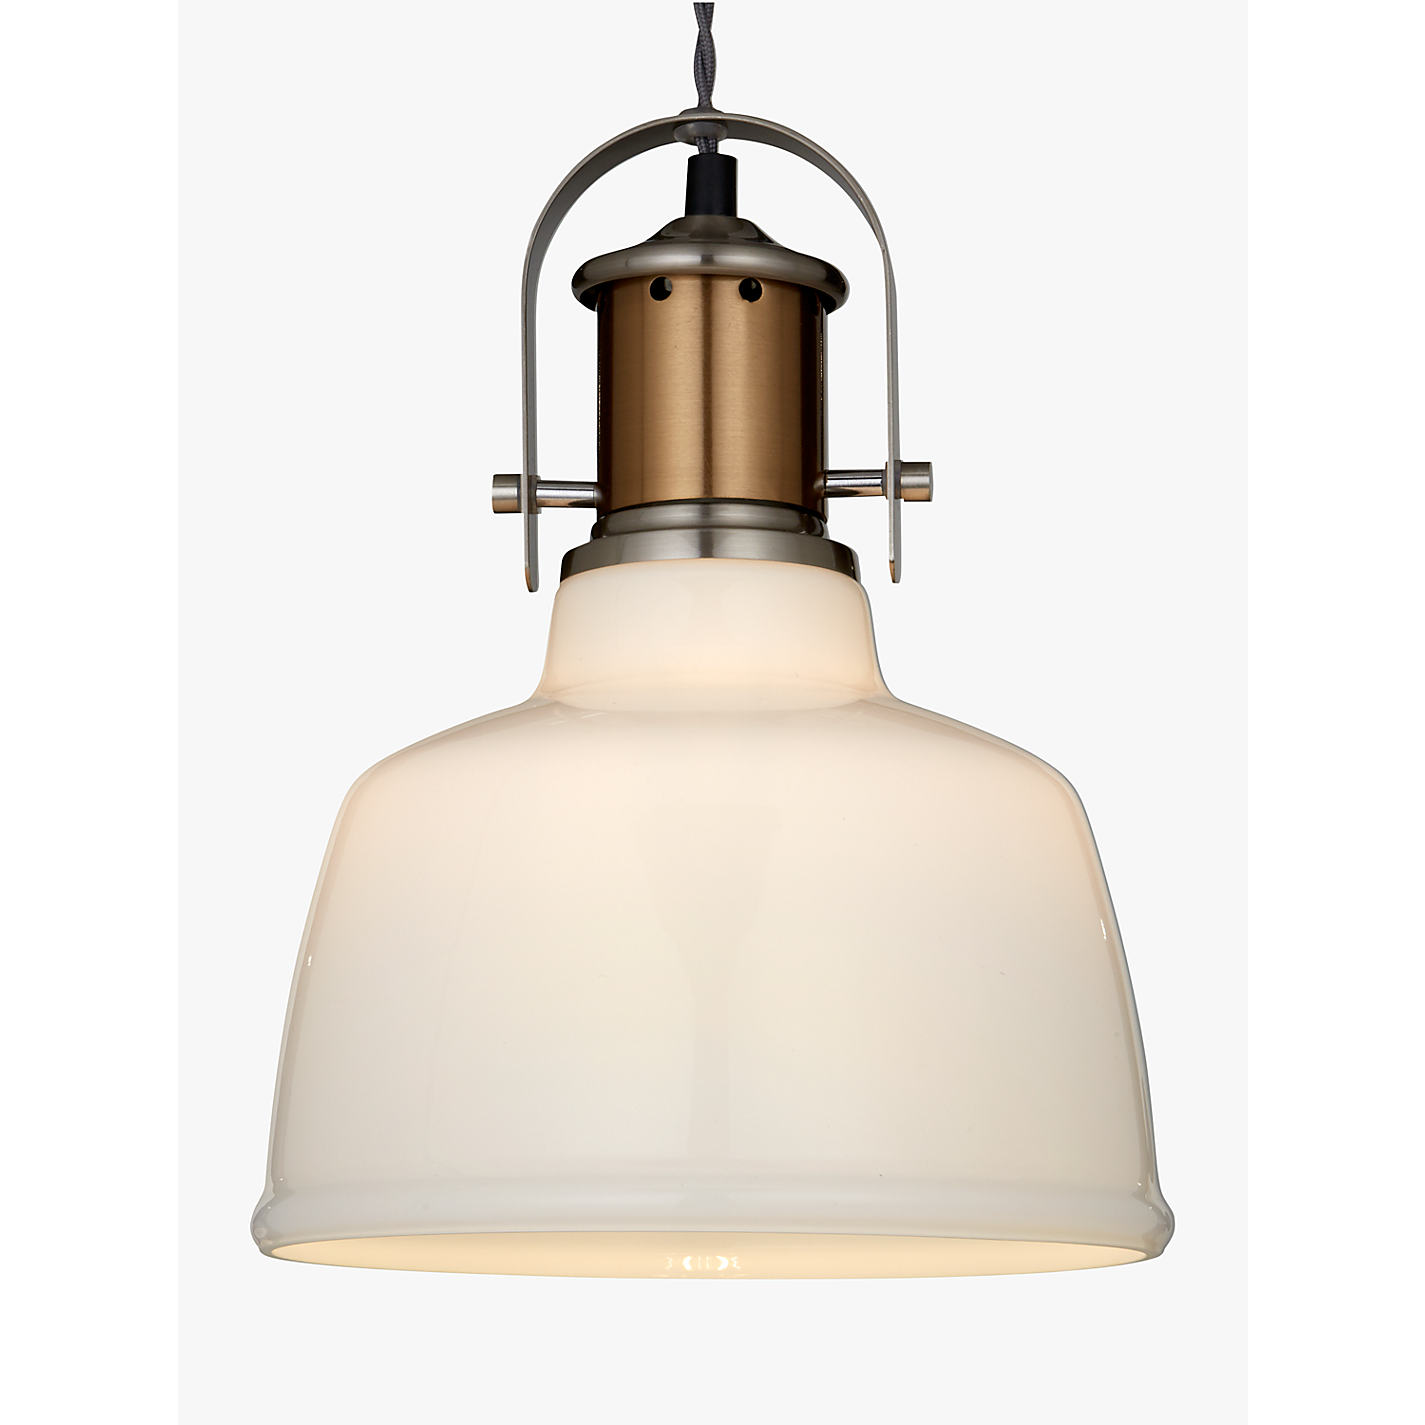 Buy john lewis lloyd glass white pendant ceiling light satin buy john lewis lloyd glass white pendant ceiling light satin nickel online at johnlewis aloadofball Gallery